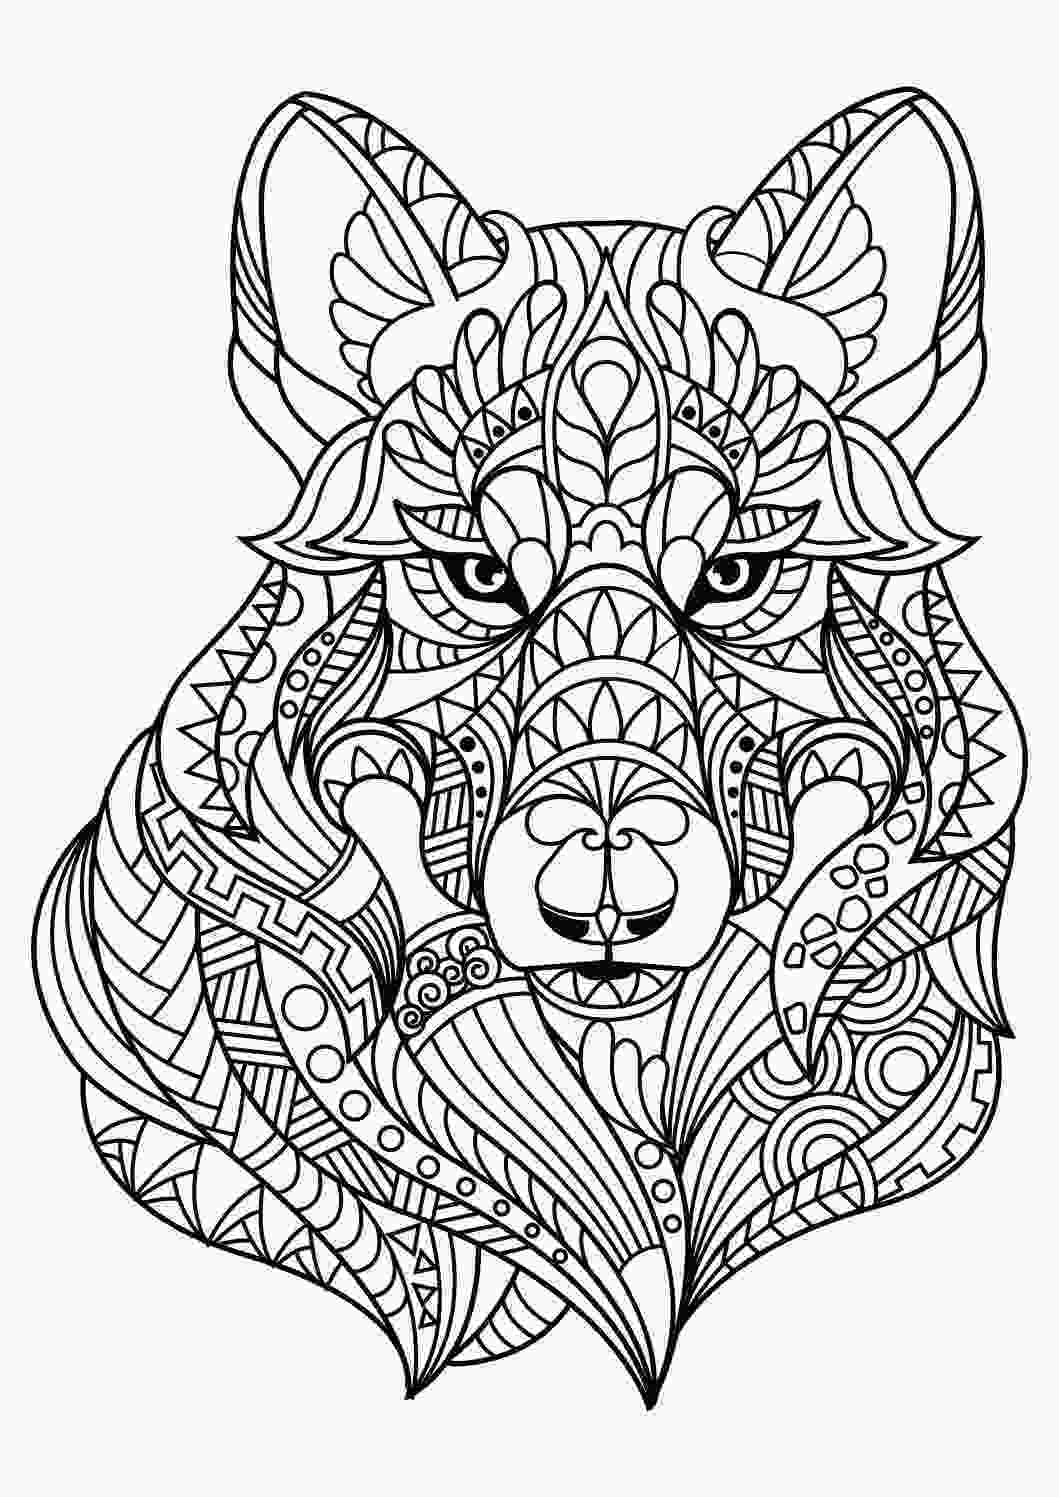 animal coloring pages online animal coloring pages pdf animal coloring pages horse